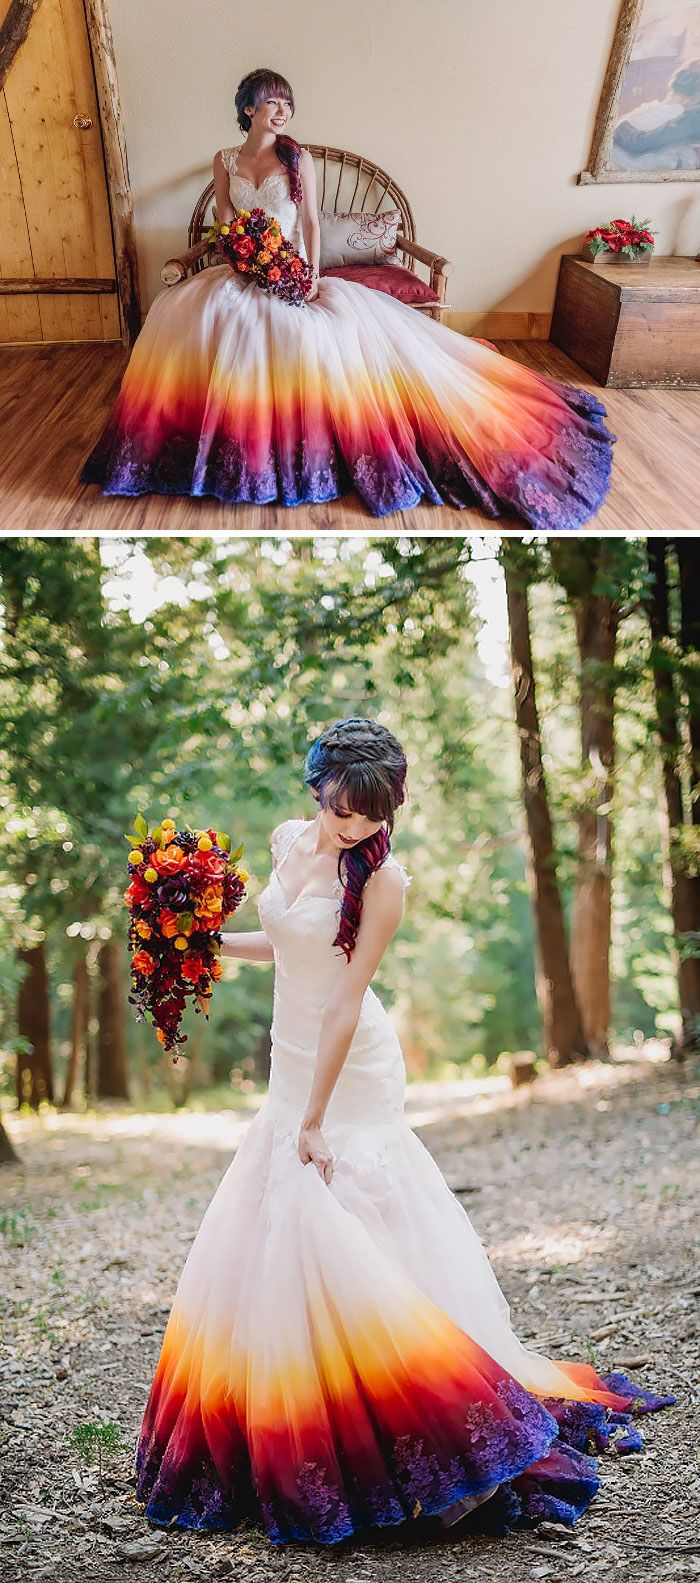 Dipped wedding dress  Pin by Payton buckley on Prom  Pinterest  Dipped wedding dress